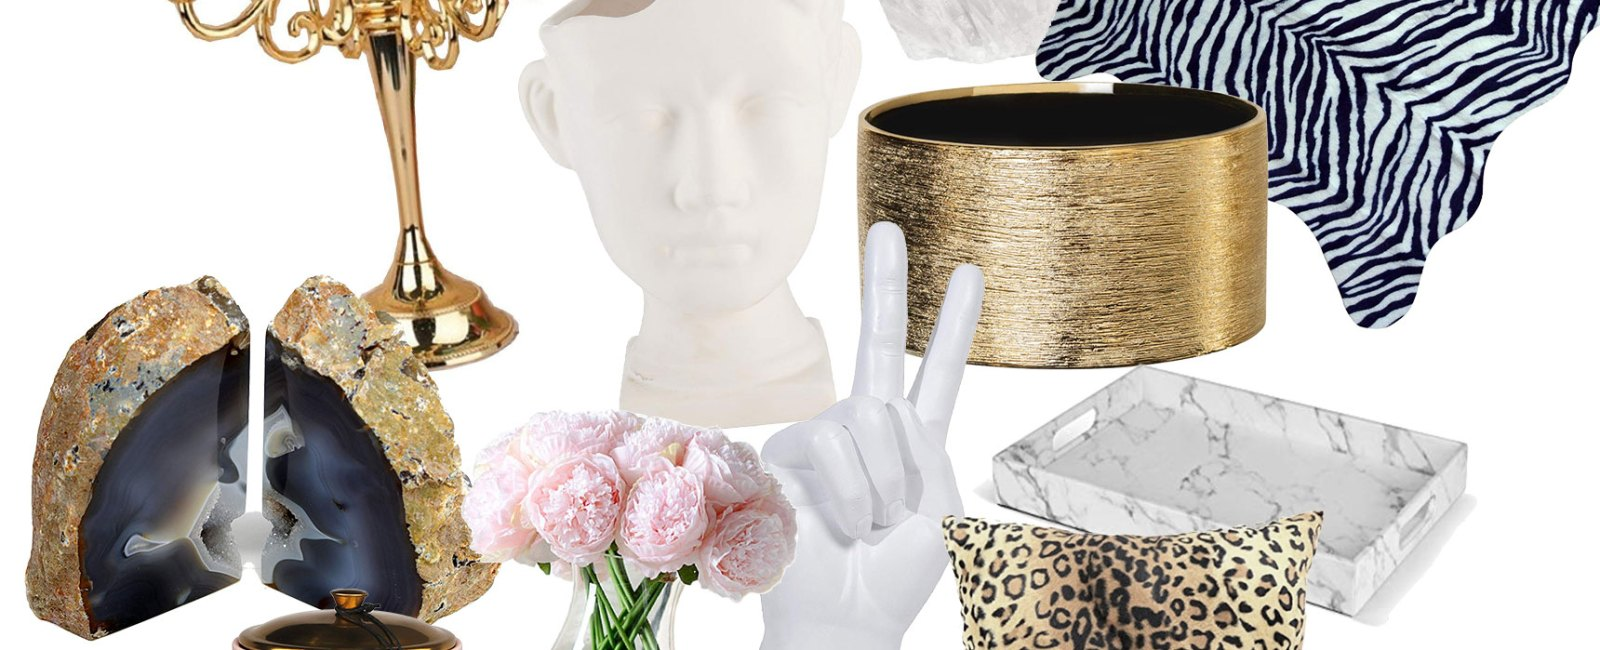 Chic Home Decor Under $30